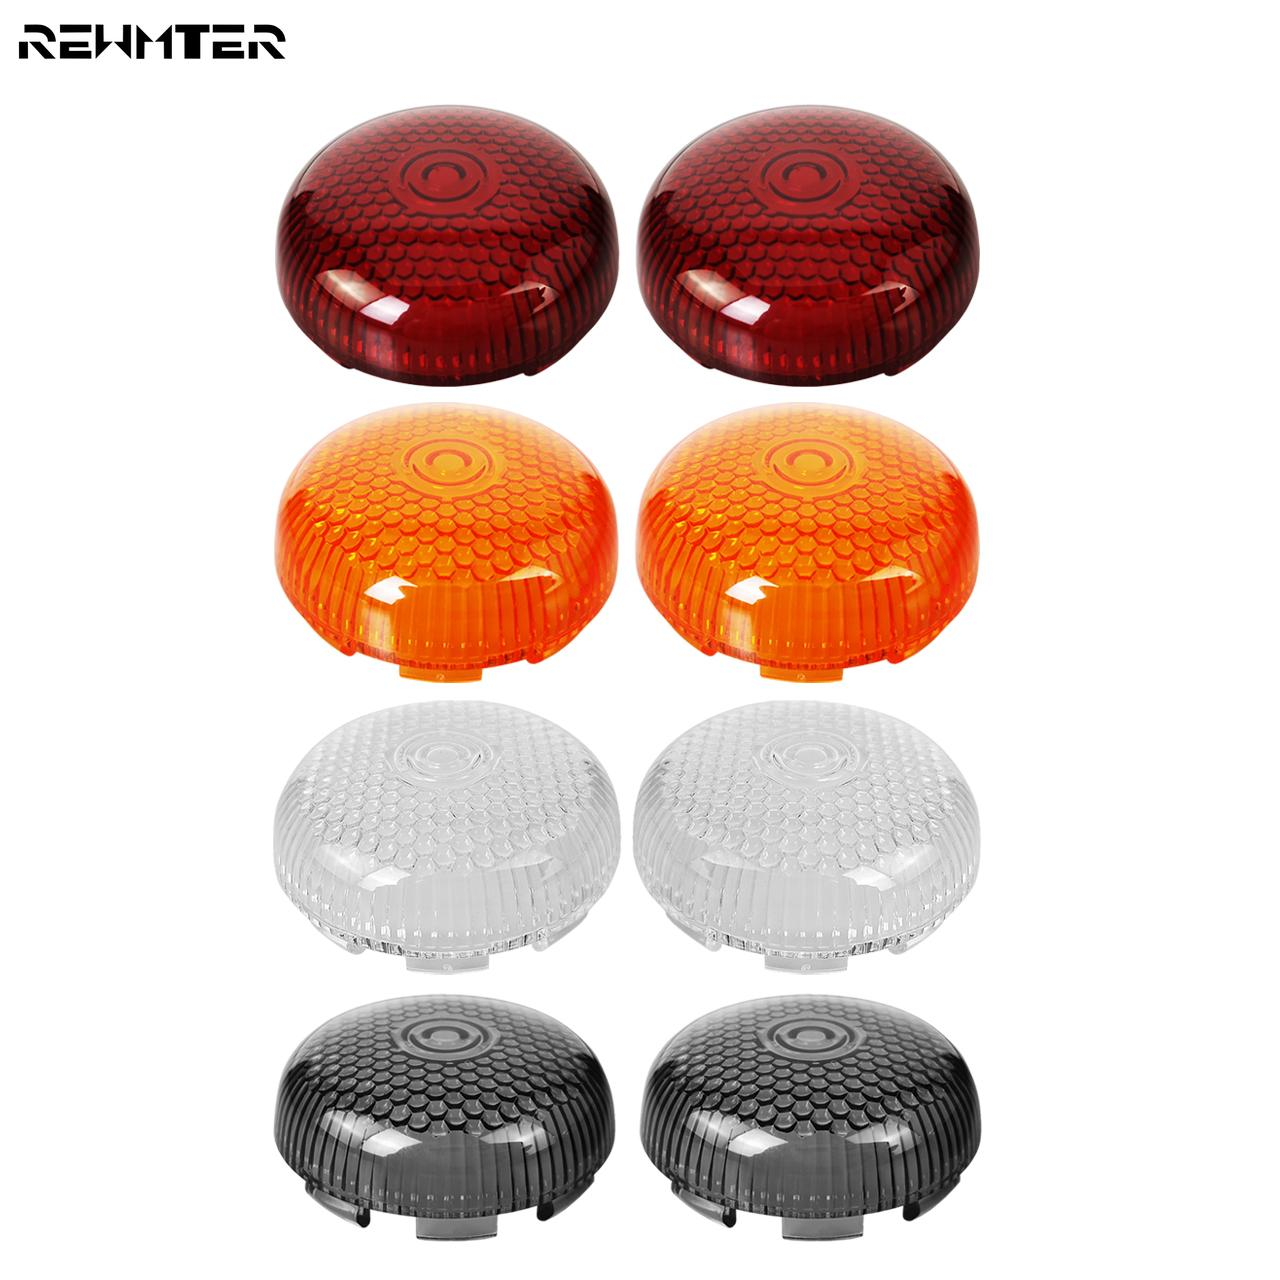 Motorcycle Turn Signal Indicator Lens Light Lamp Cover For Harley Sportster 883 1200 Touring Dyna Softail Road King Heritage